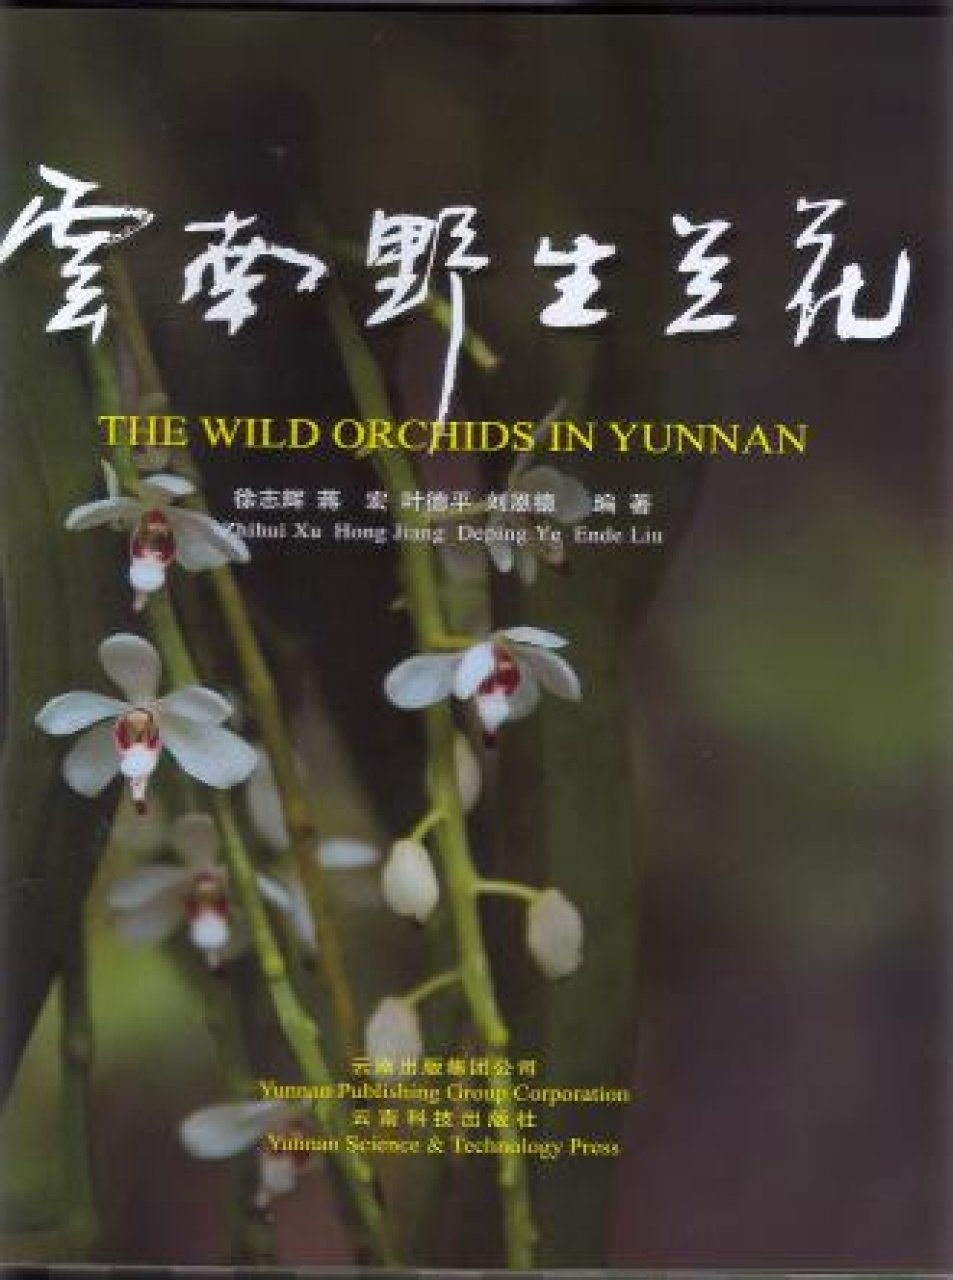 The Wild Orchids in Yunnan [Chinese]